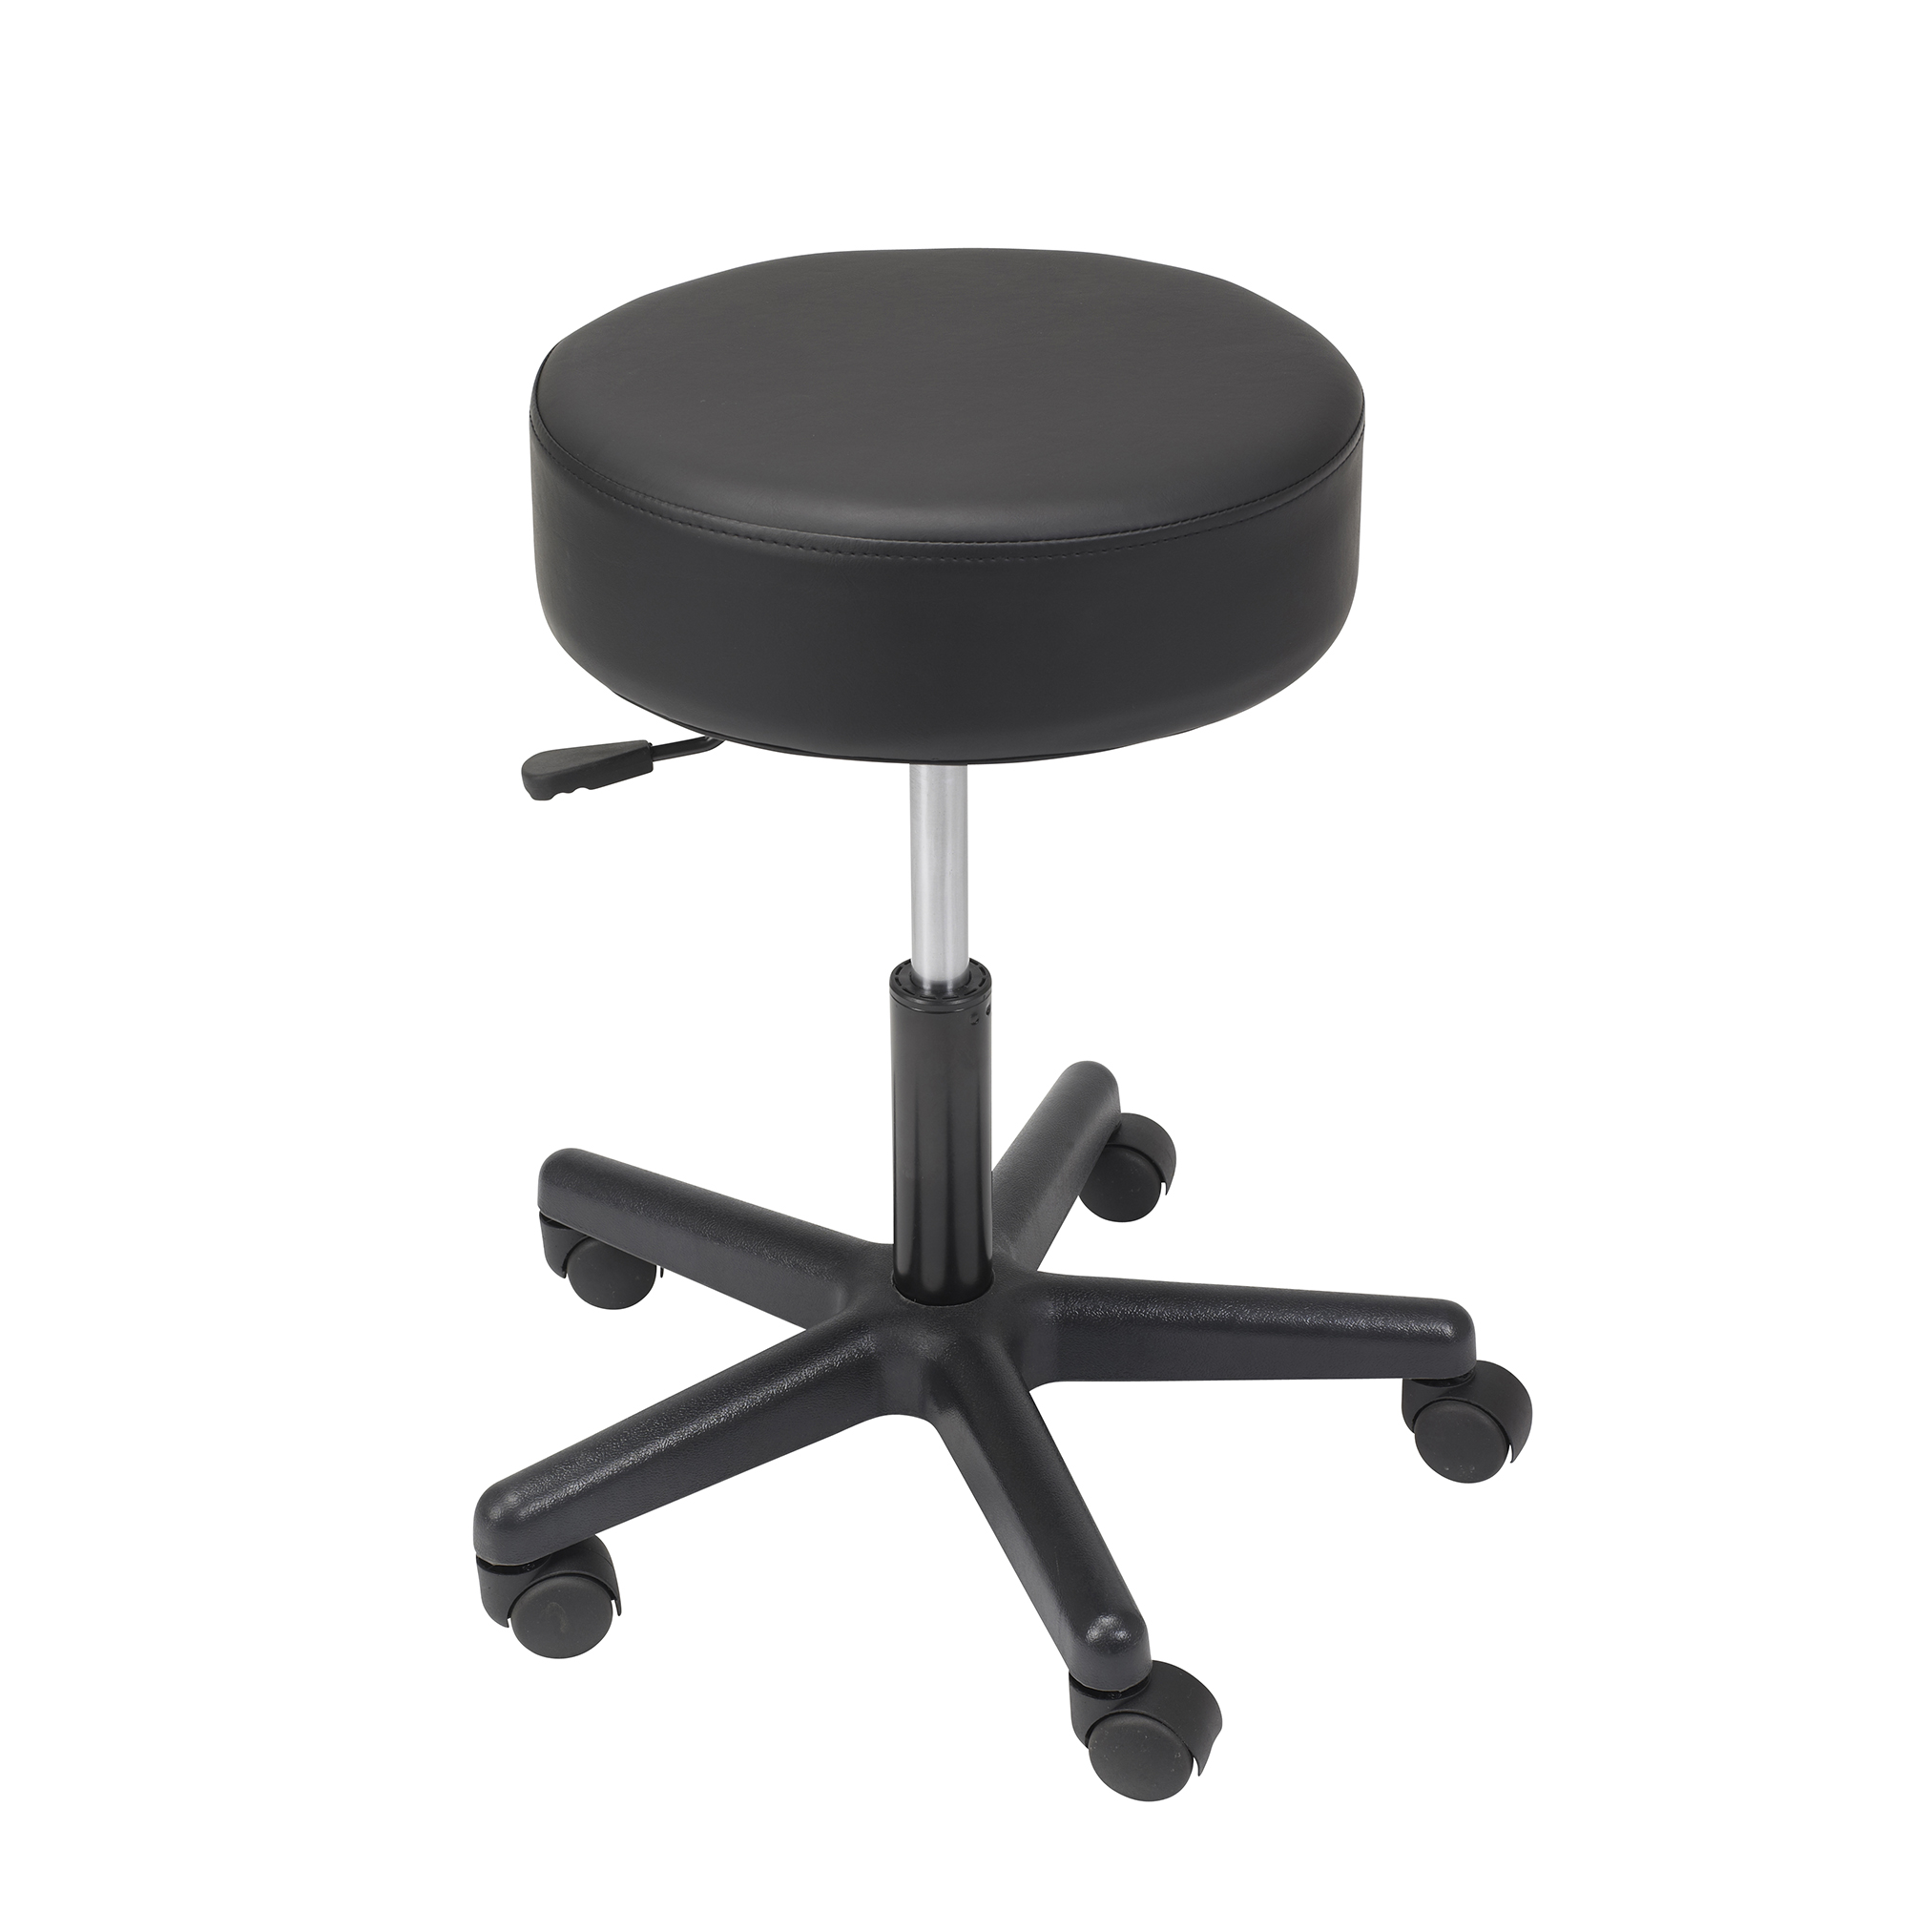 Charmant Padded Revolving Stool, Height Adjustable